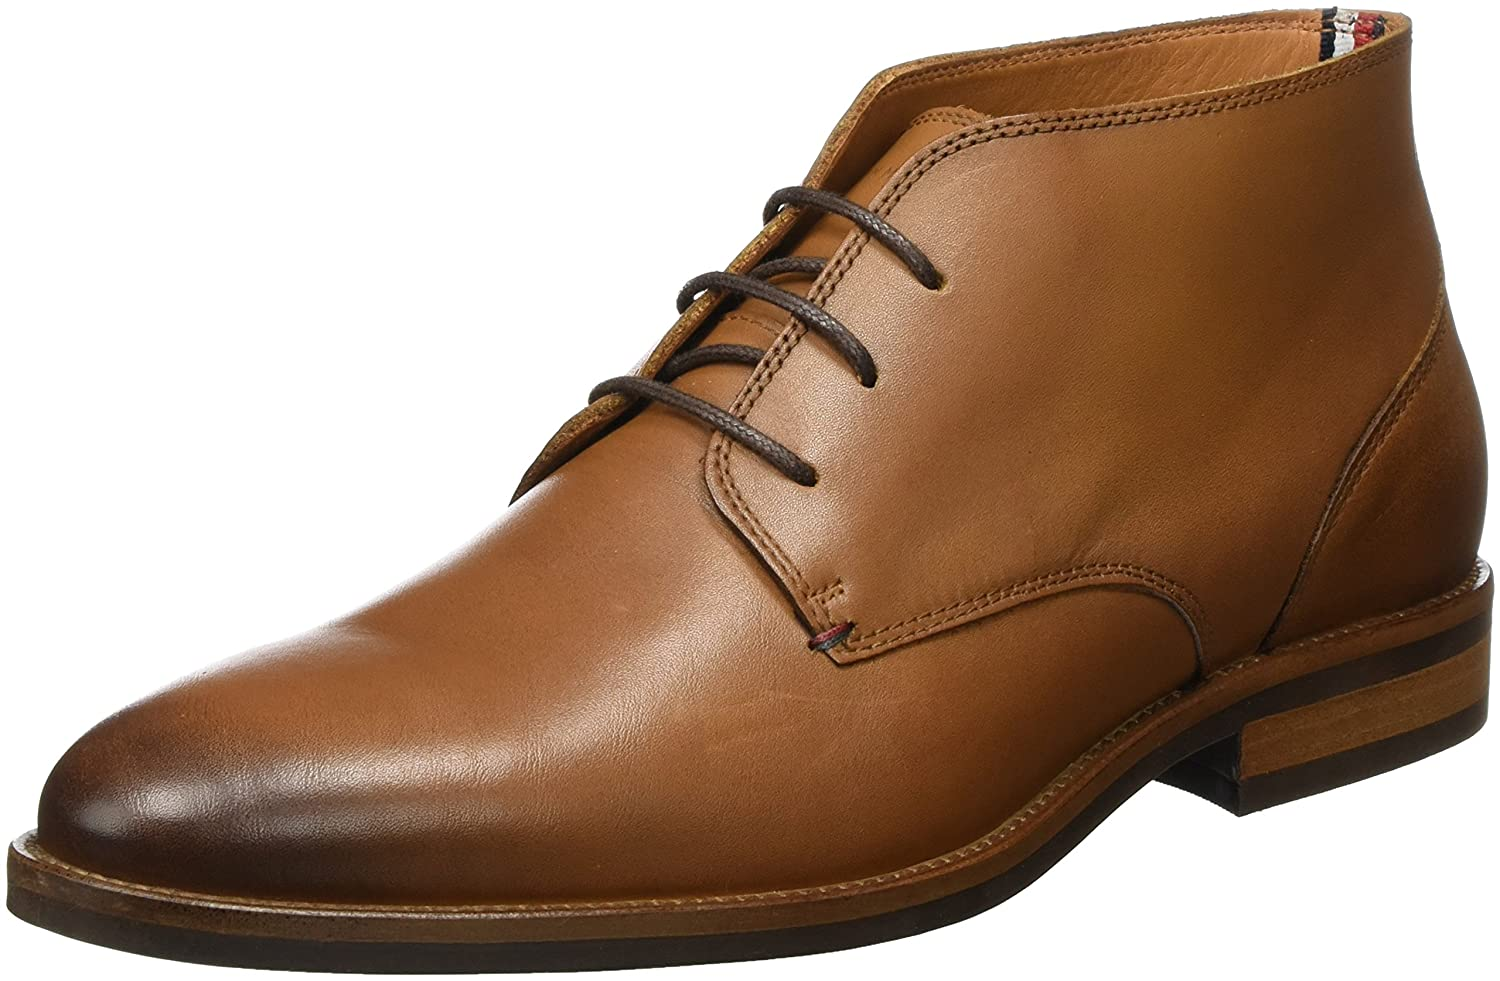 TALLA 44 EU. Tommy Hilfiger Essential Leather Boot, Botas Chukka para Hombre